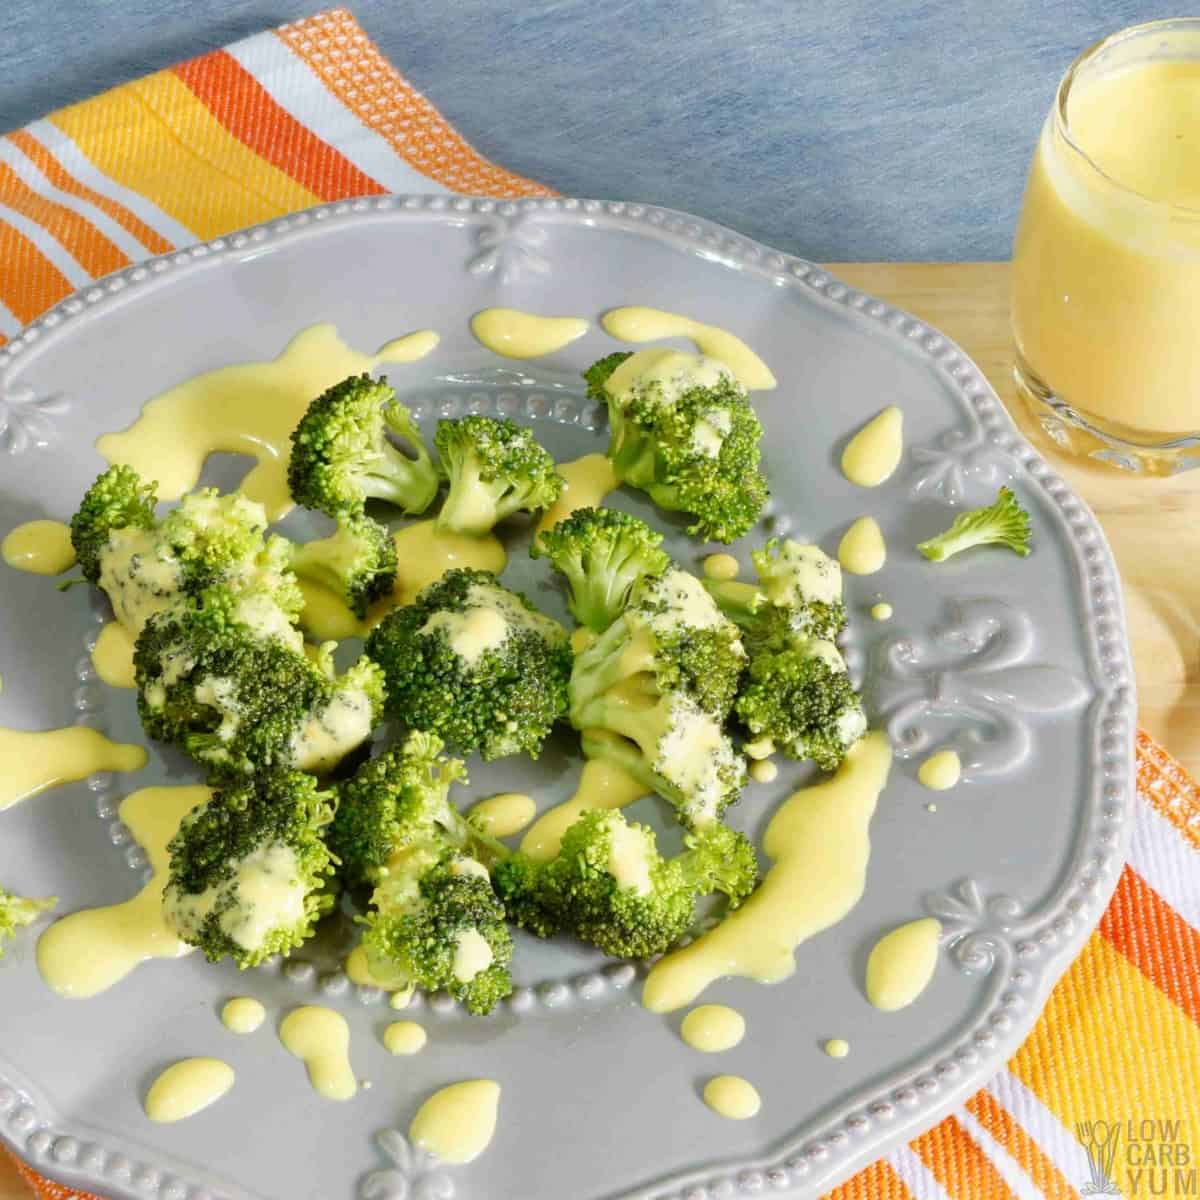 cheese sauce drizzled over broccoli on plate